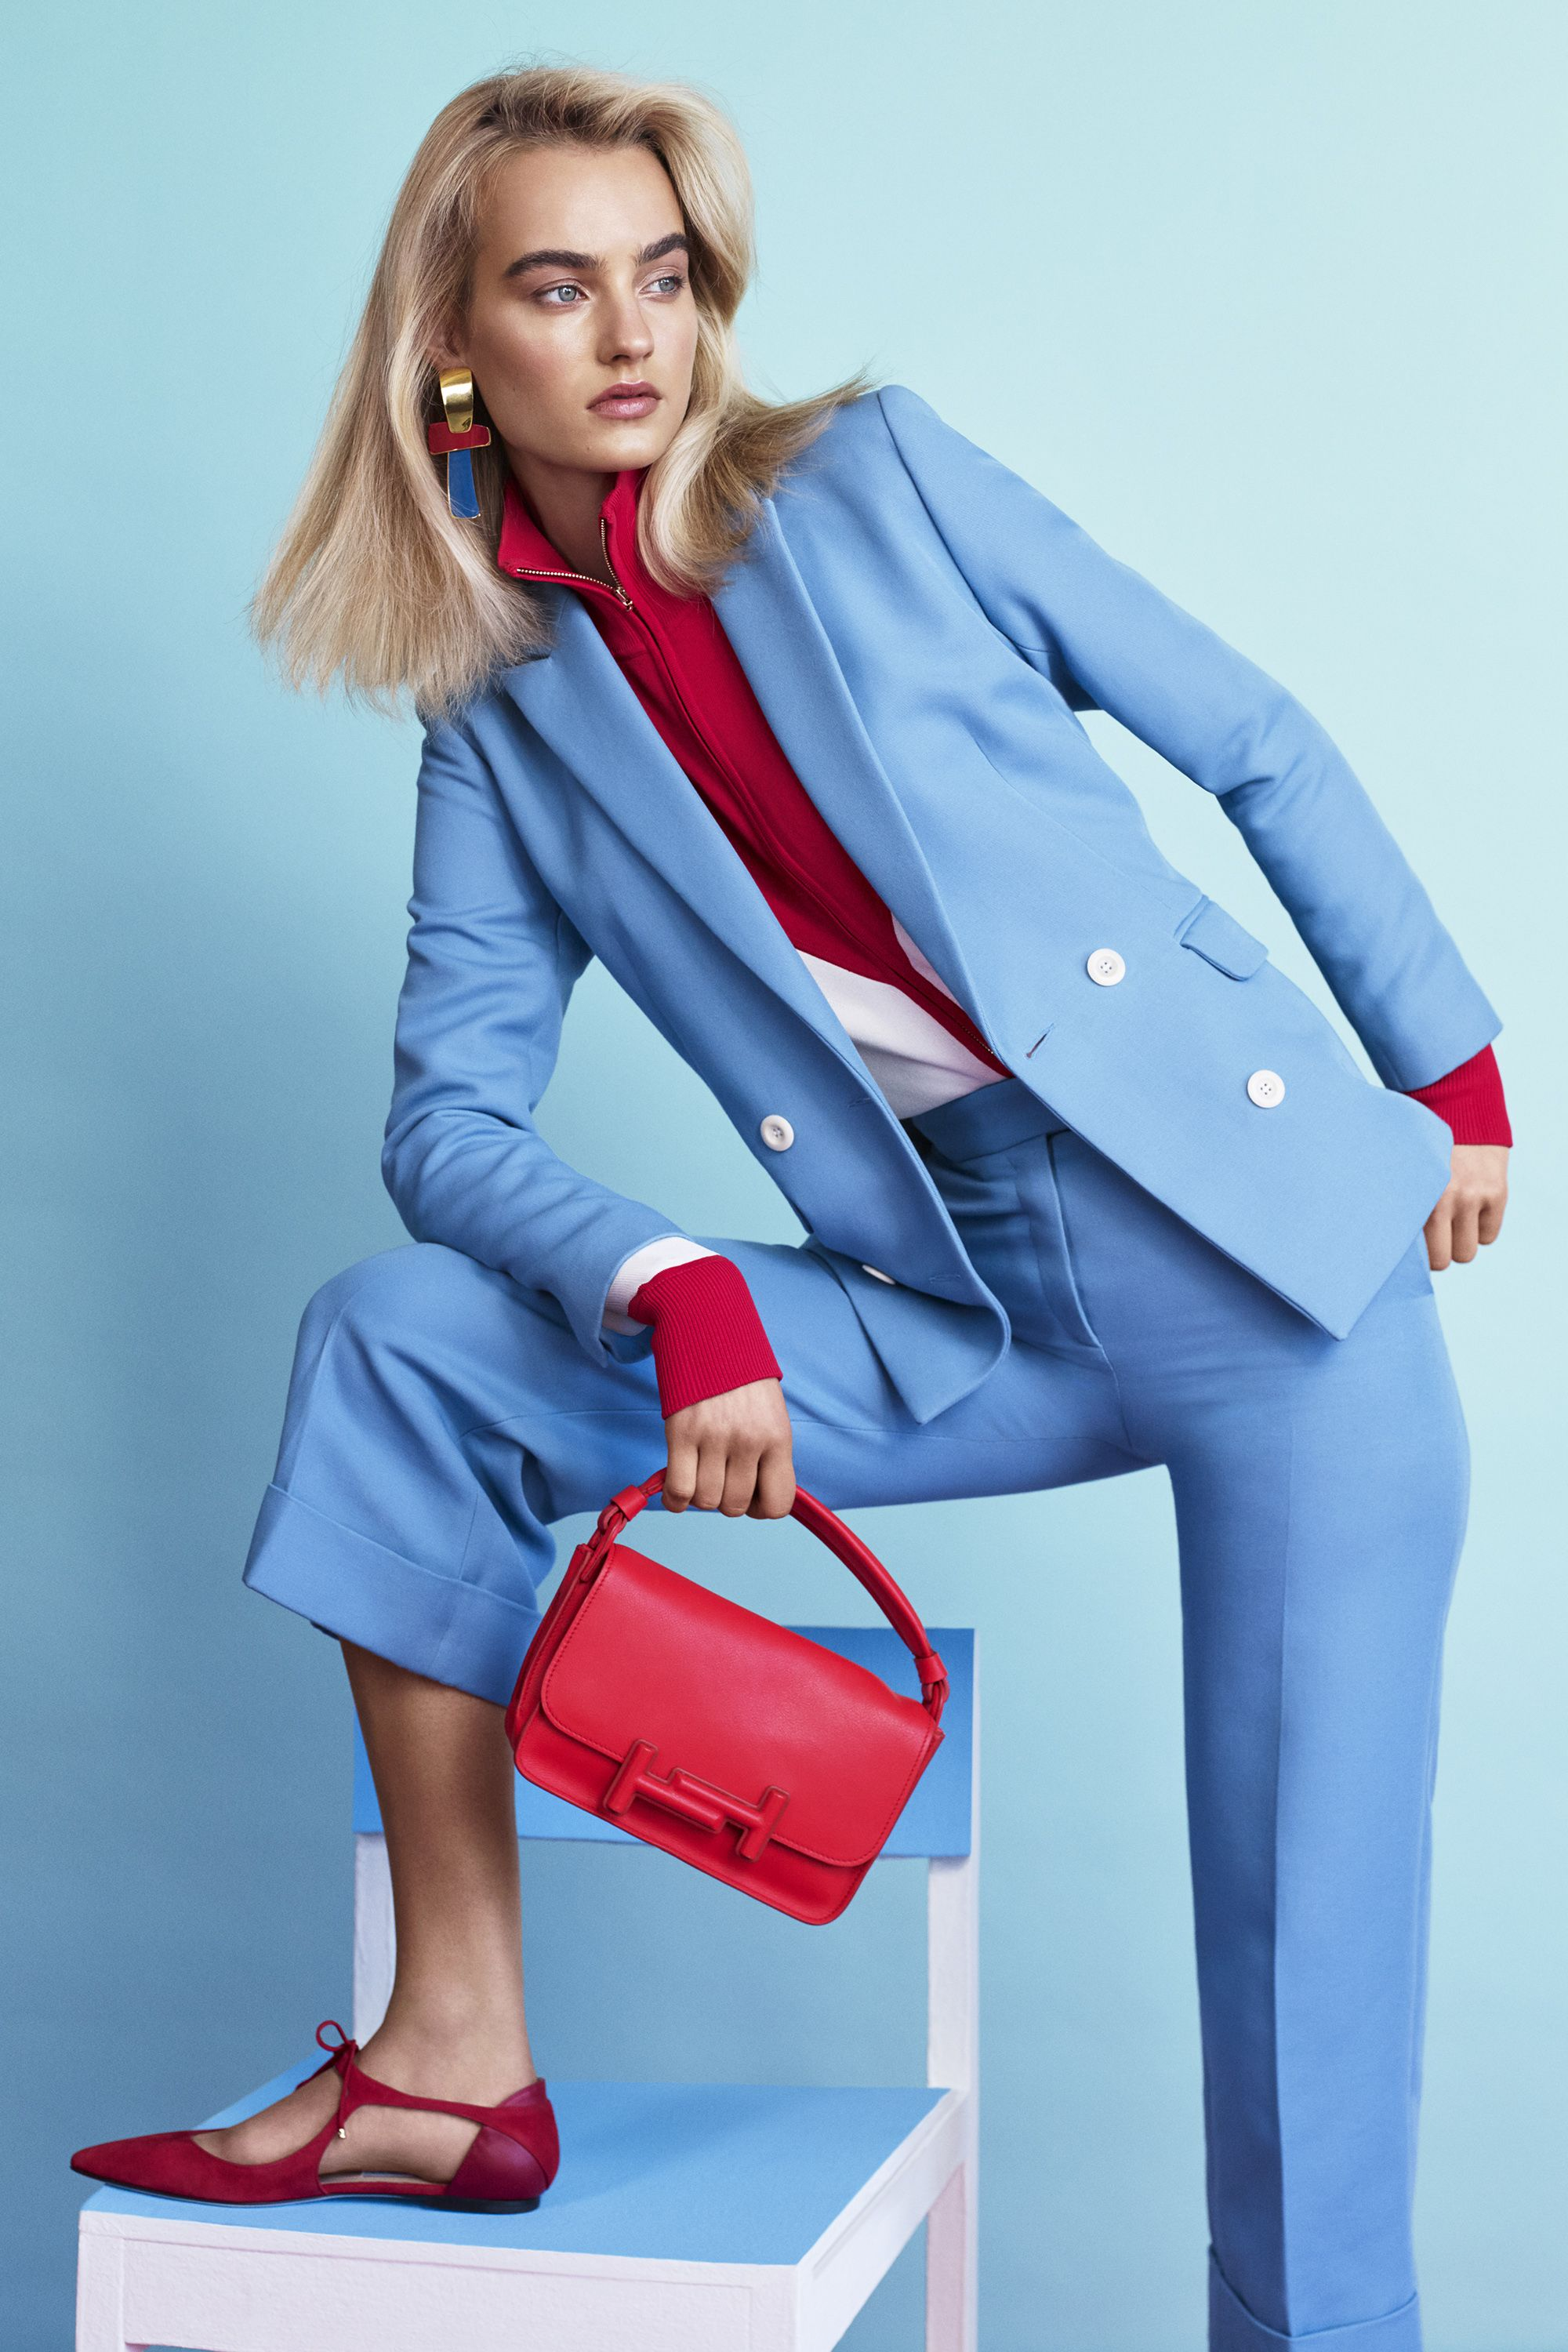 "<p><strong data-redactor-tag=""strong"" data-verified=""redactor"">Sandro</strong> blazer, $595, sweater, $295, pants, $275, <a href=""http://us.sandro-paris.com/en/womens/"" target=""_blank"" data-tracking-id=""recirc-text-link"">sandro.com</a>; <strong data-redactor-tag=""strong"" data-verified=""redactor"">Tod's </strong>bag, $1,925, 212-644-5945; <strong data-redactor-tag=""strong"" data-verified=""redactor"">Jimmy Choo</strong> shoes, $650, <a href=""http://us.jimmychoo.com/en/home"" target=""_blank"" data-tracking-id=""recirc-text-link"">jimmychoo.com</a>; <strong data-redactor-tag=""strong"">Lizzie Fortunato</strong> earrings, $240, <a href=""https://shop.harpersbazaar.com/designers/lizzie-fortunato/"" target=""_blank"" data-tracking-id=""recirc-text-link"">shopBAZAAR.com</a>.<strong data-redactor-tag=""strong"">  </strong><span class=""redactor-invisible-space"" data-verified=""redactor"" data-redactor-tag=""span"" data-redactor-class=""redactor-invisible-space""></span></p>"